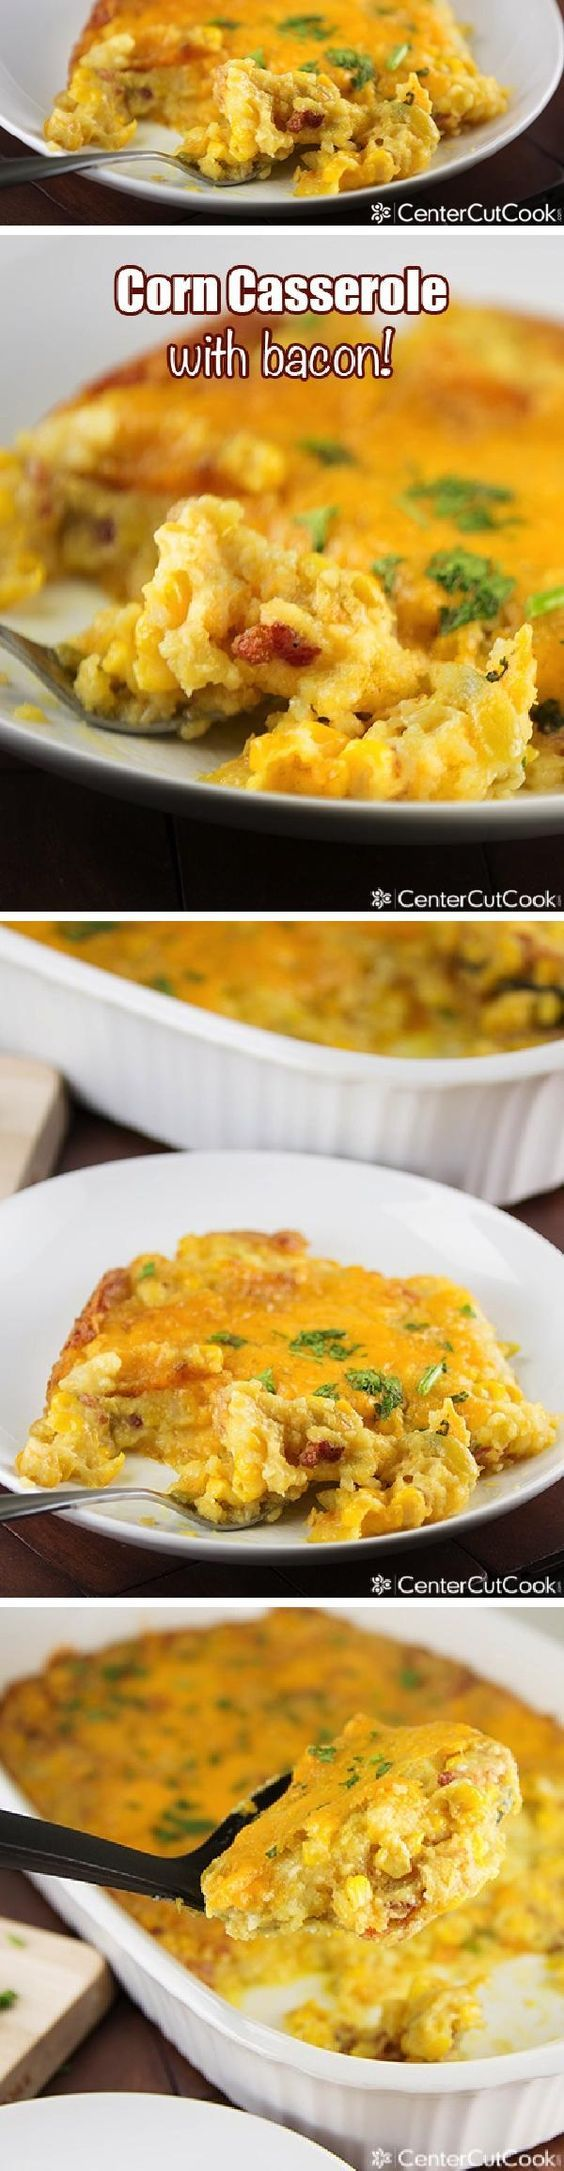 EASY CORN CASSEROLE made with Jiffy mix, cheddar cheese, sour cream, green chiles, a little cream cheese for creaminess and BACON! A savory, comforting side dish that everyone will beg you to make over and over!